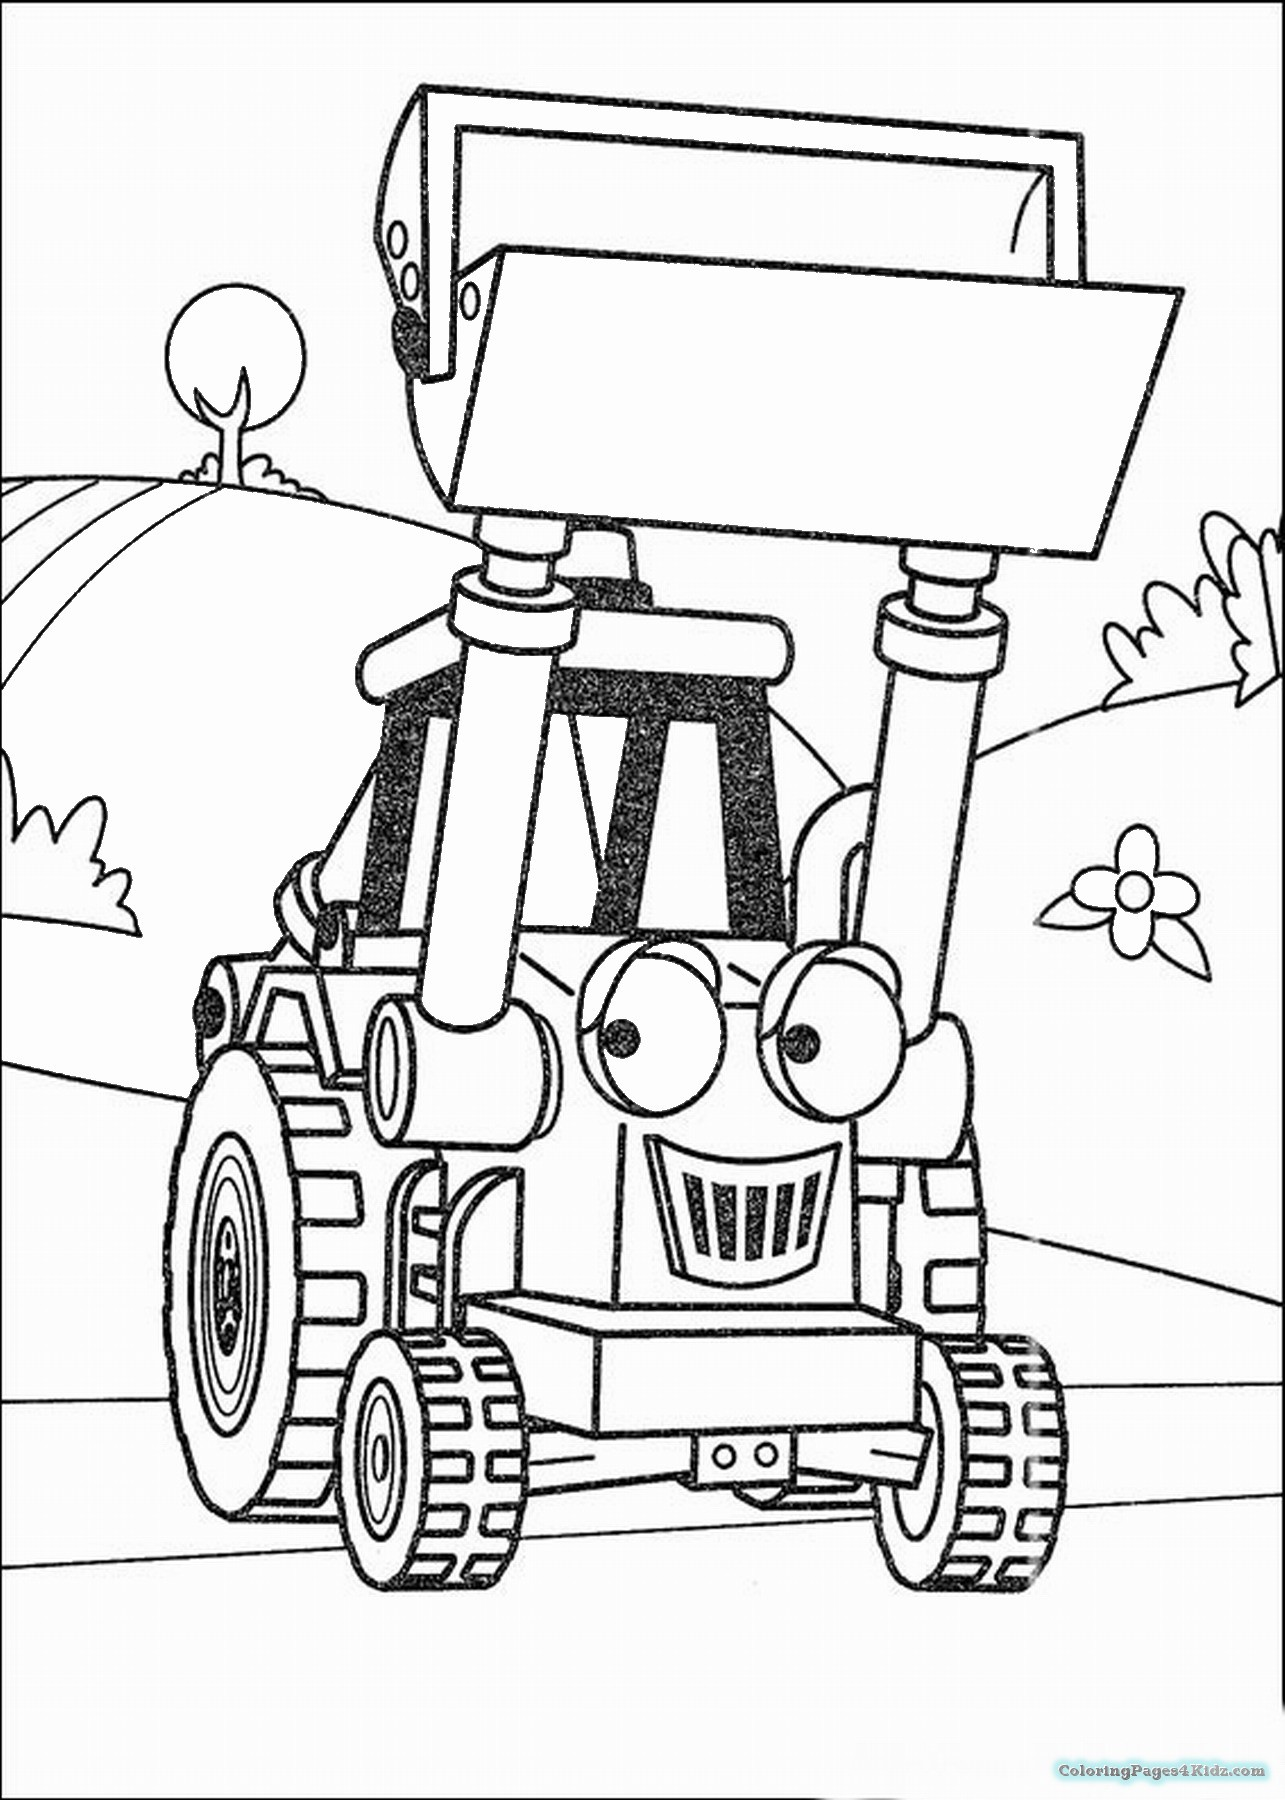 1285x1800 Fast And Furious 7 Tractor Coloring Pages Coloring Pages For Kids